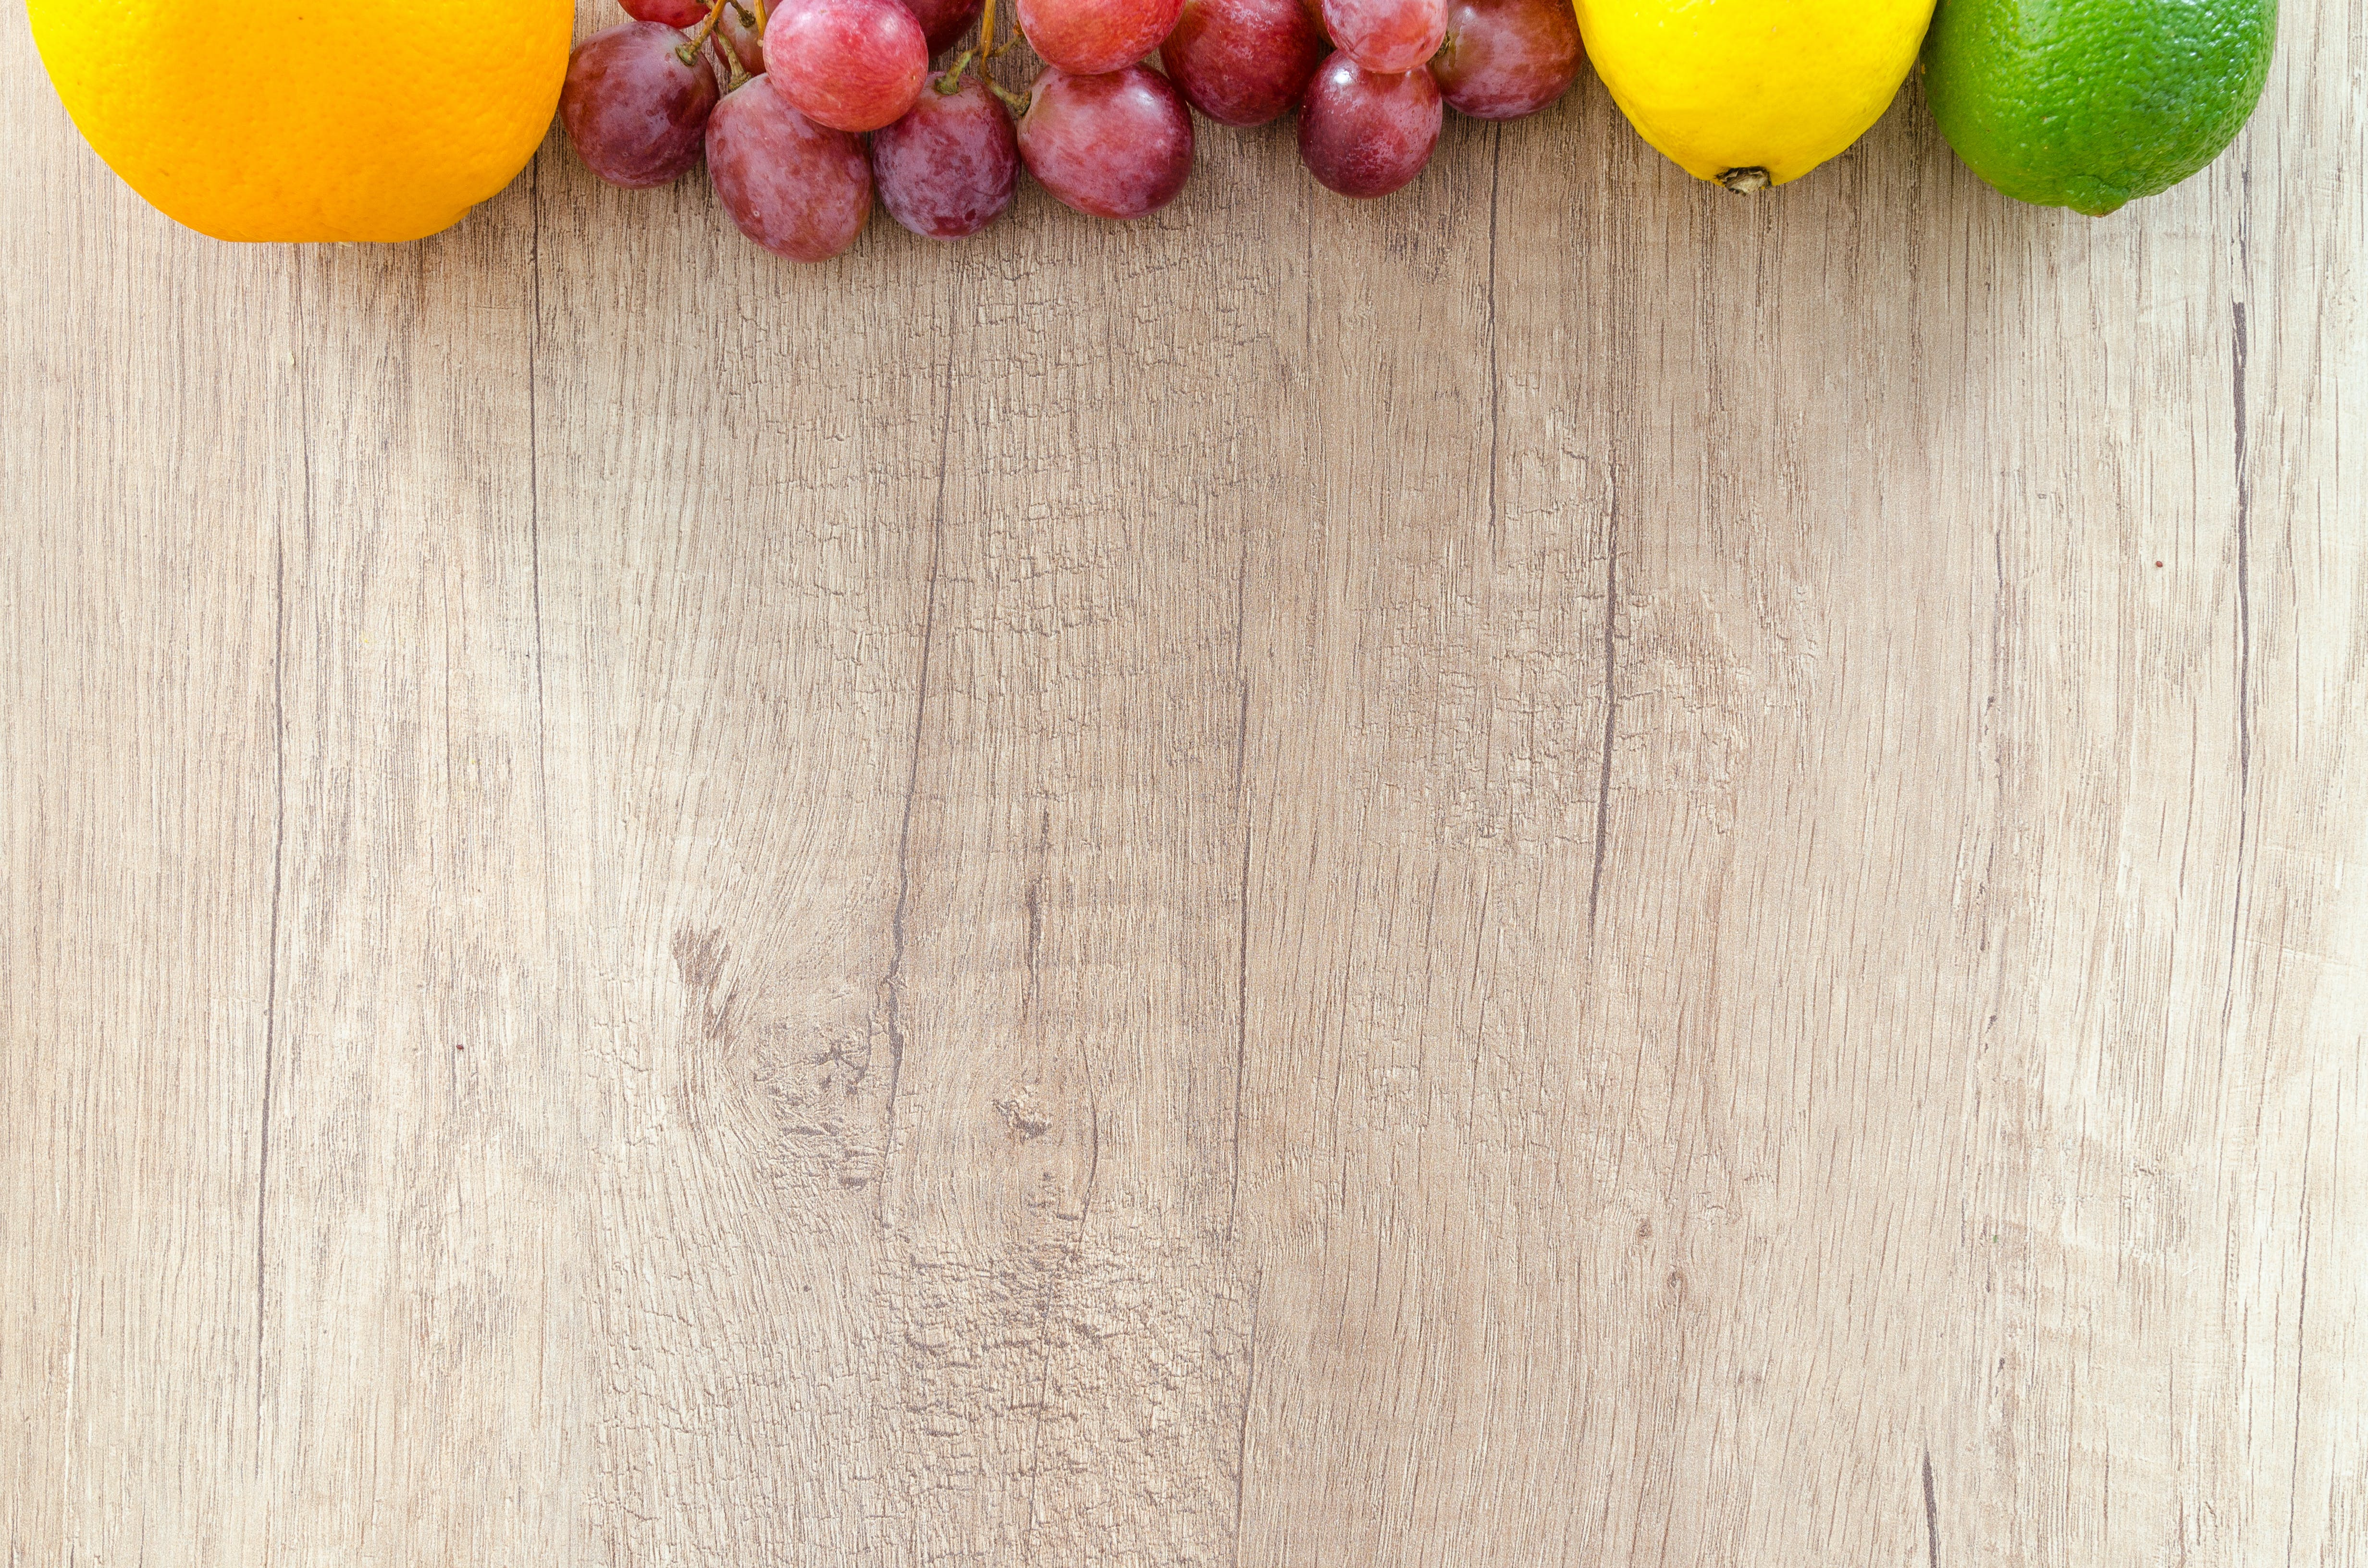 chopping board, citrus fruits, delicious